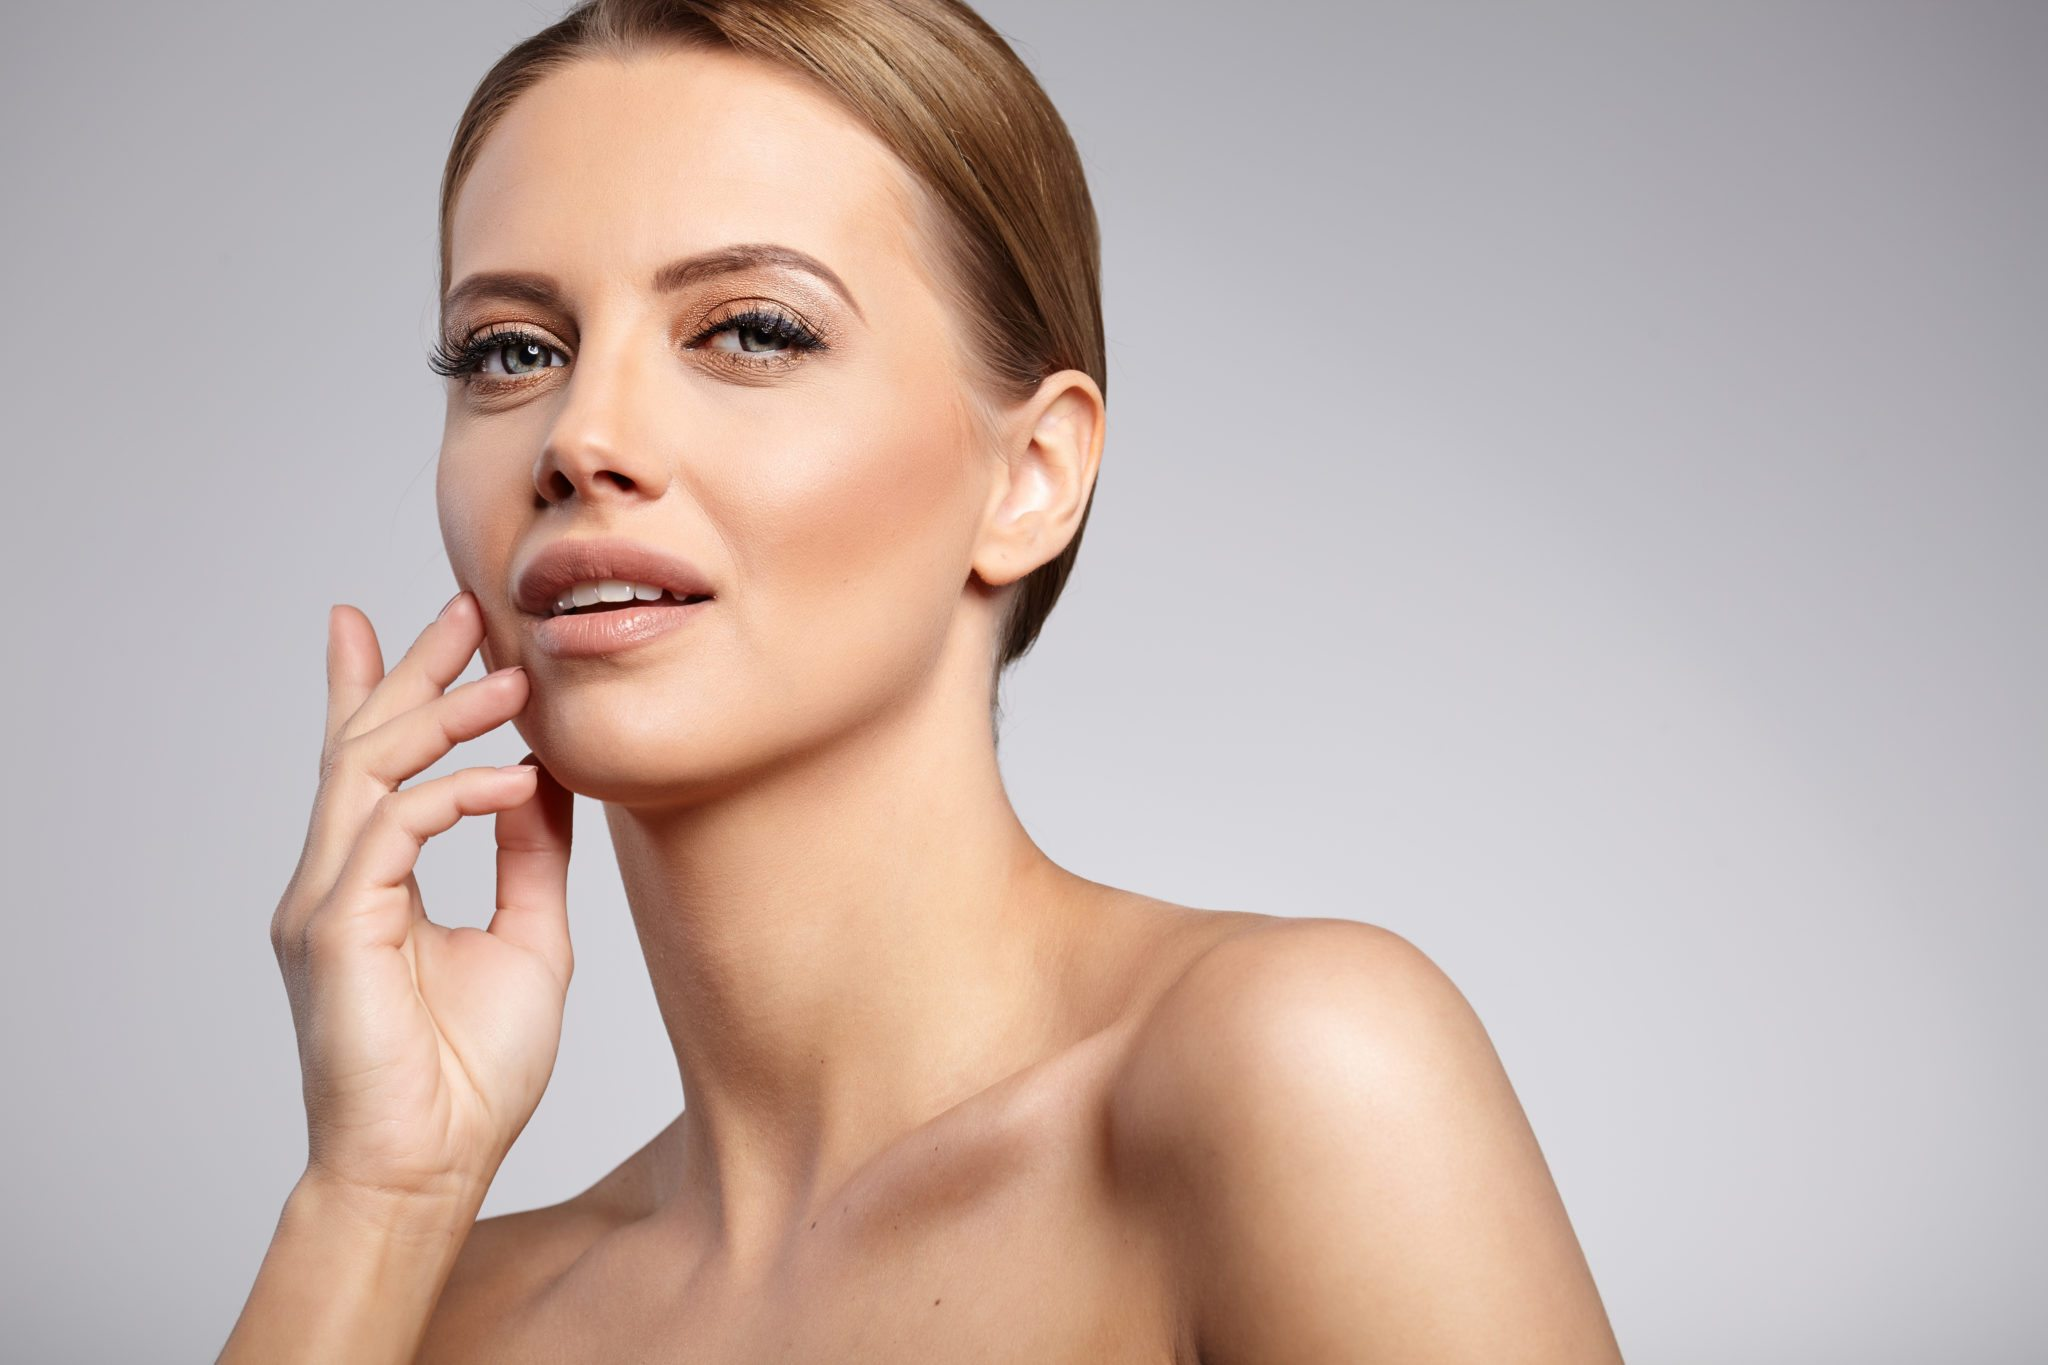 With you Ultimate facial toning accept. opinion